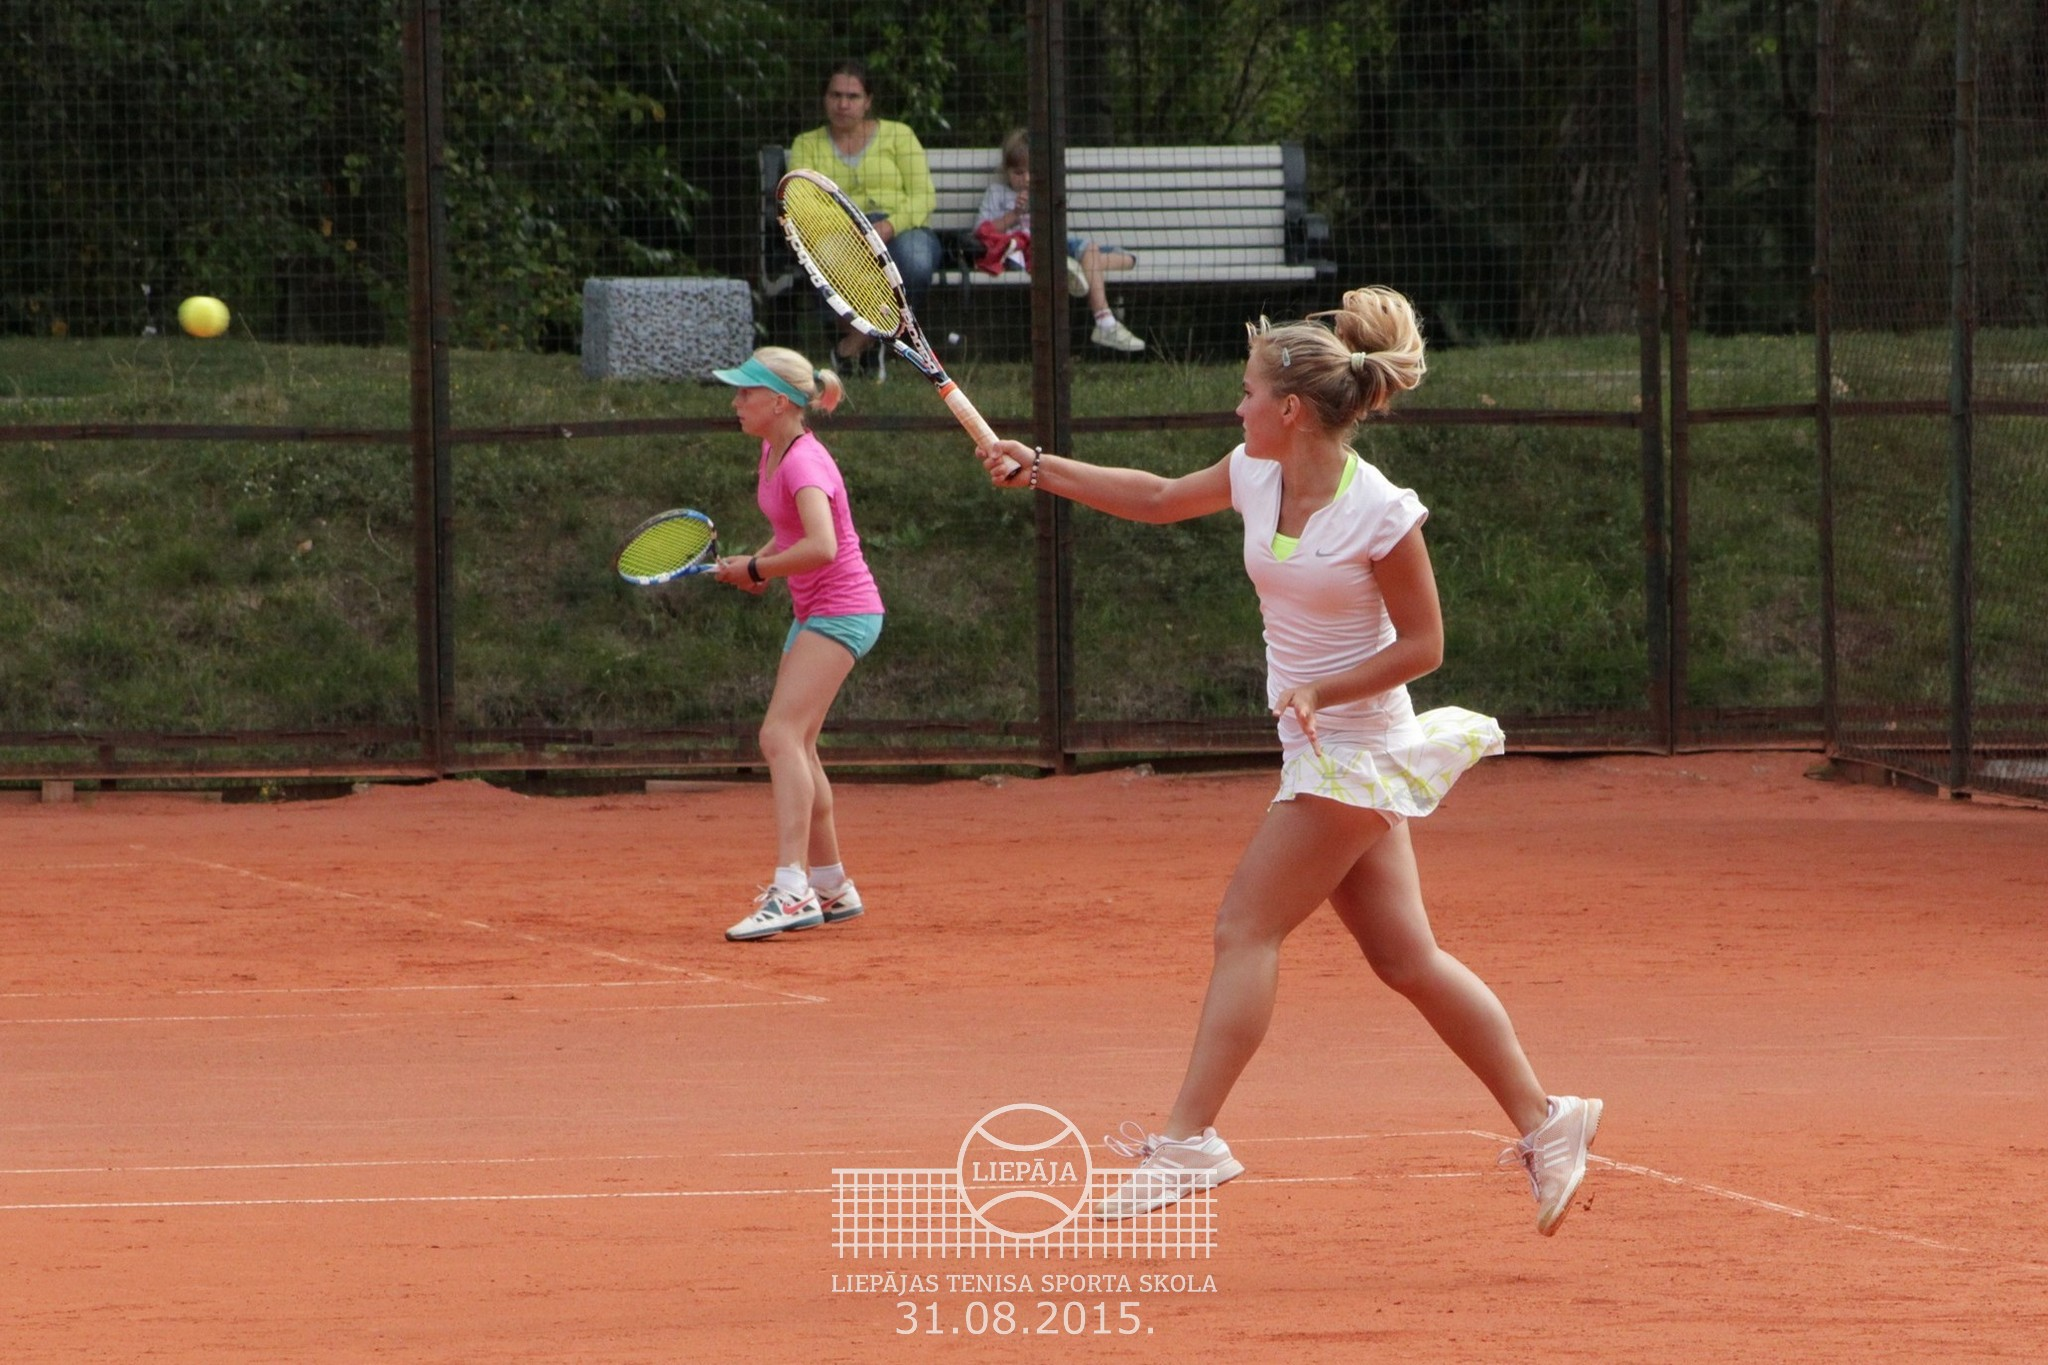 At girls competition in Main draw from 32 participants 13 were from Latvia 1c1917415880b